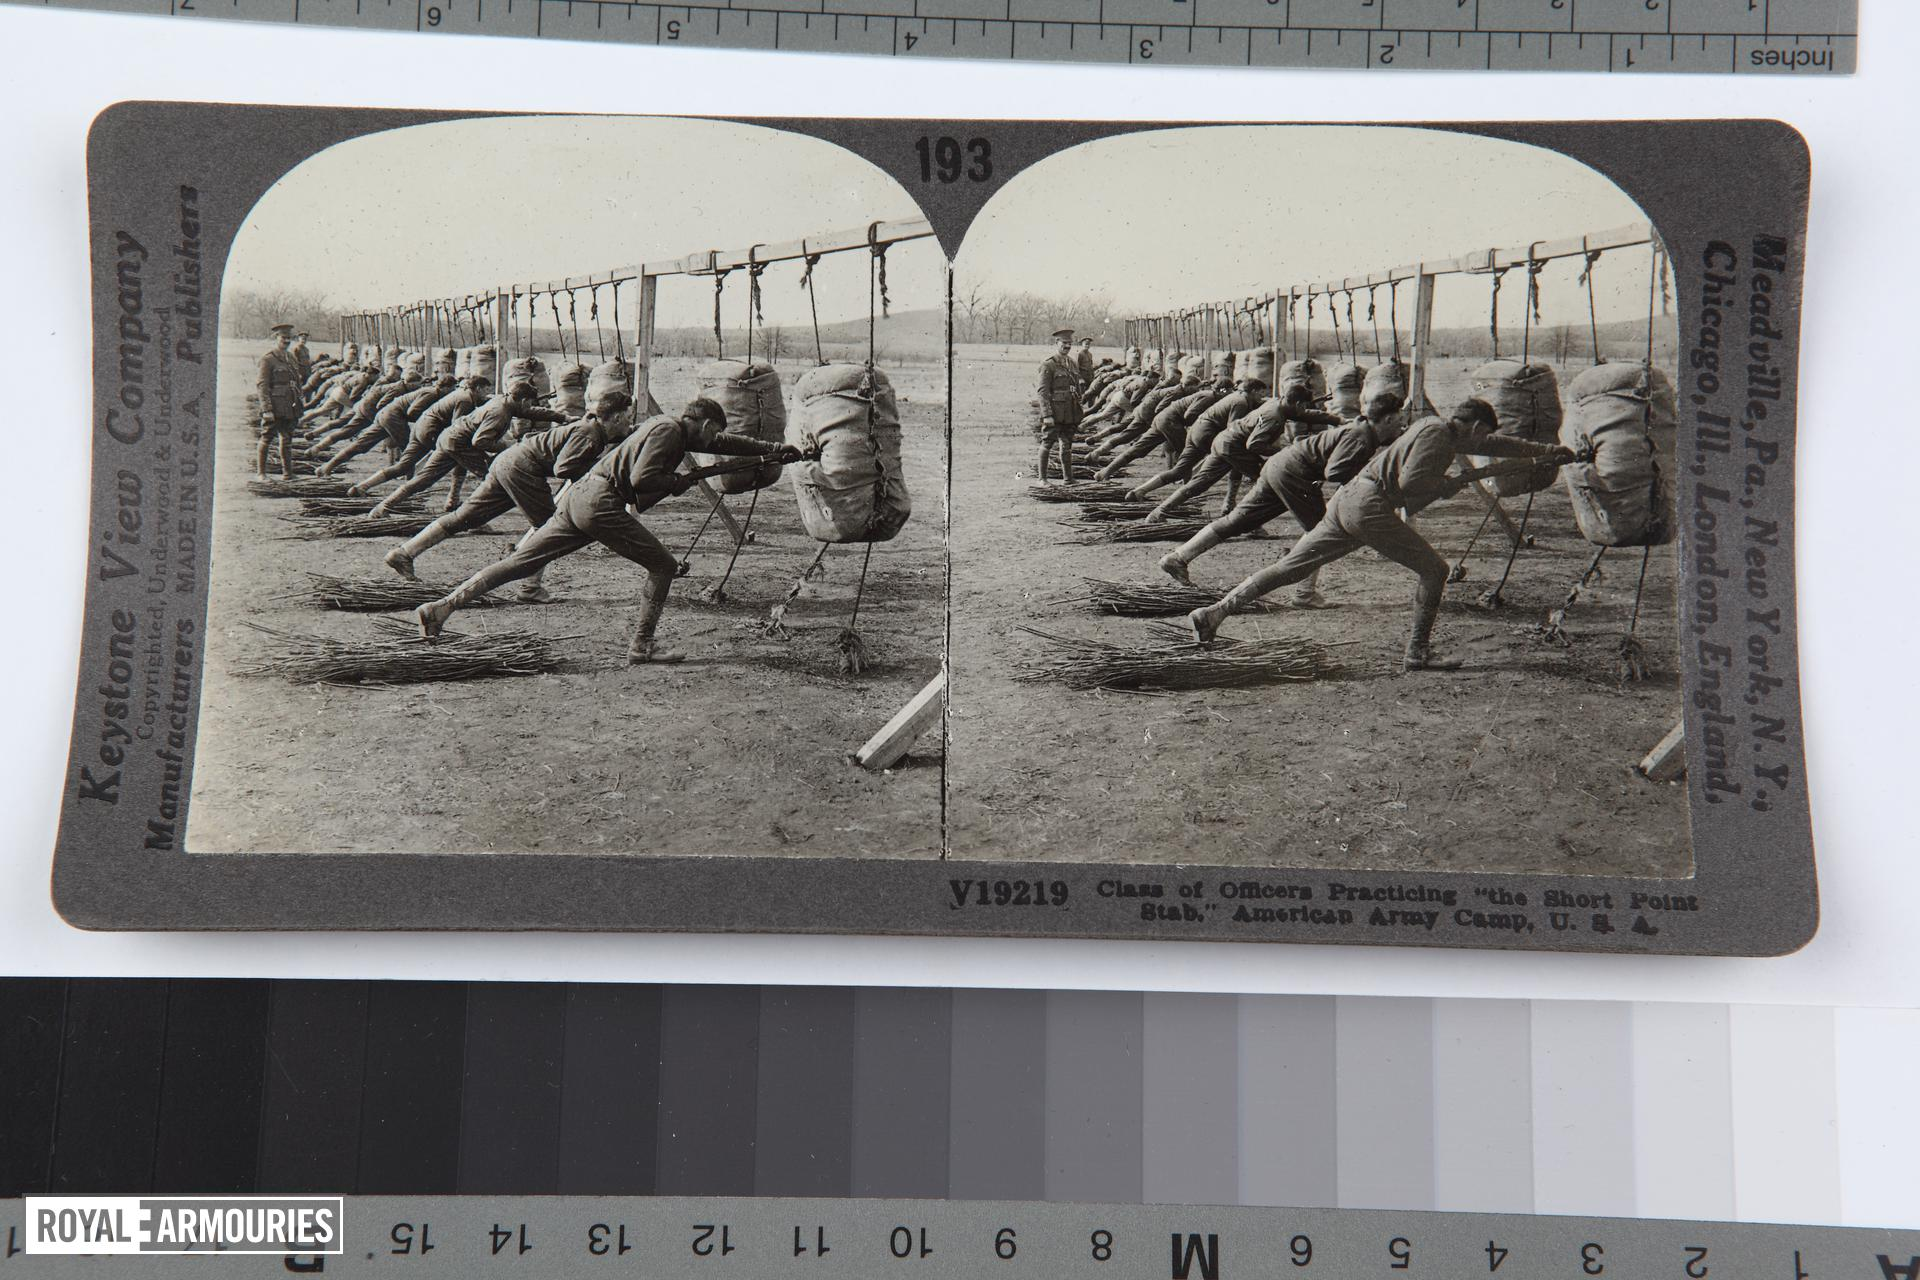 "Stereoscopic photograph entitled '193. Class of Officers Practicing ""the Short Point Stab,"" American Army Camp, U.S.A,' American, 1914-1919 (RAR.0987 193)"